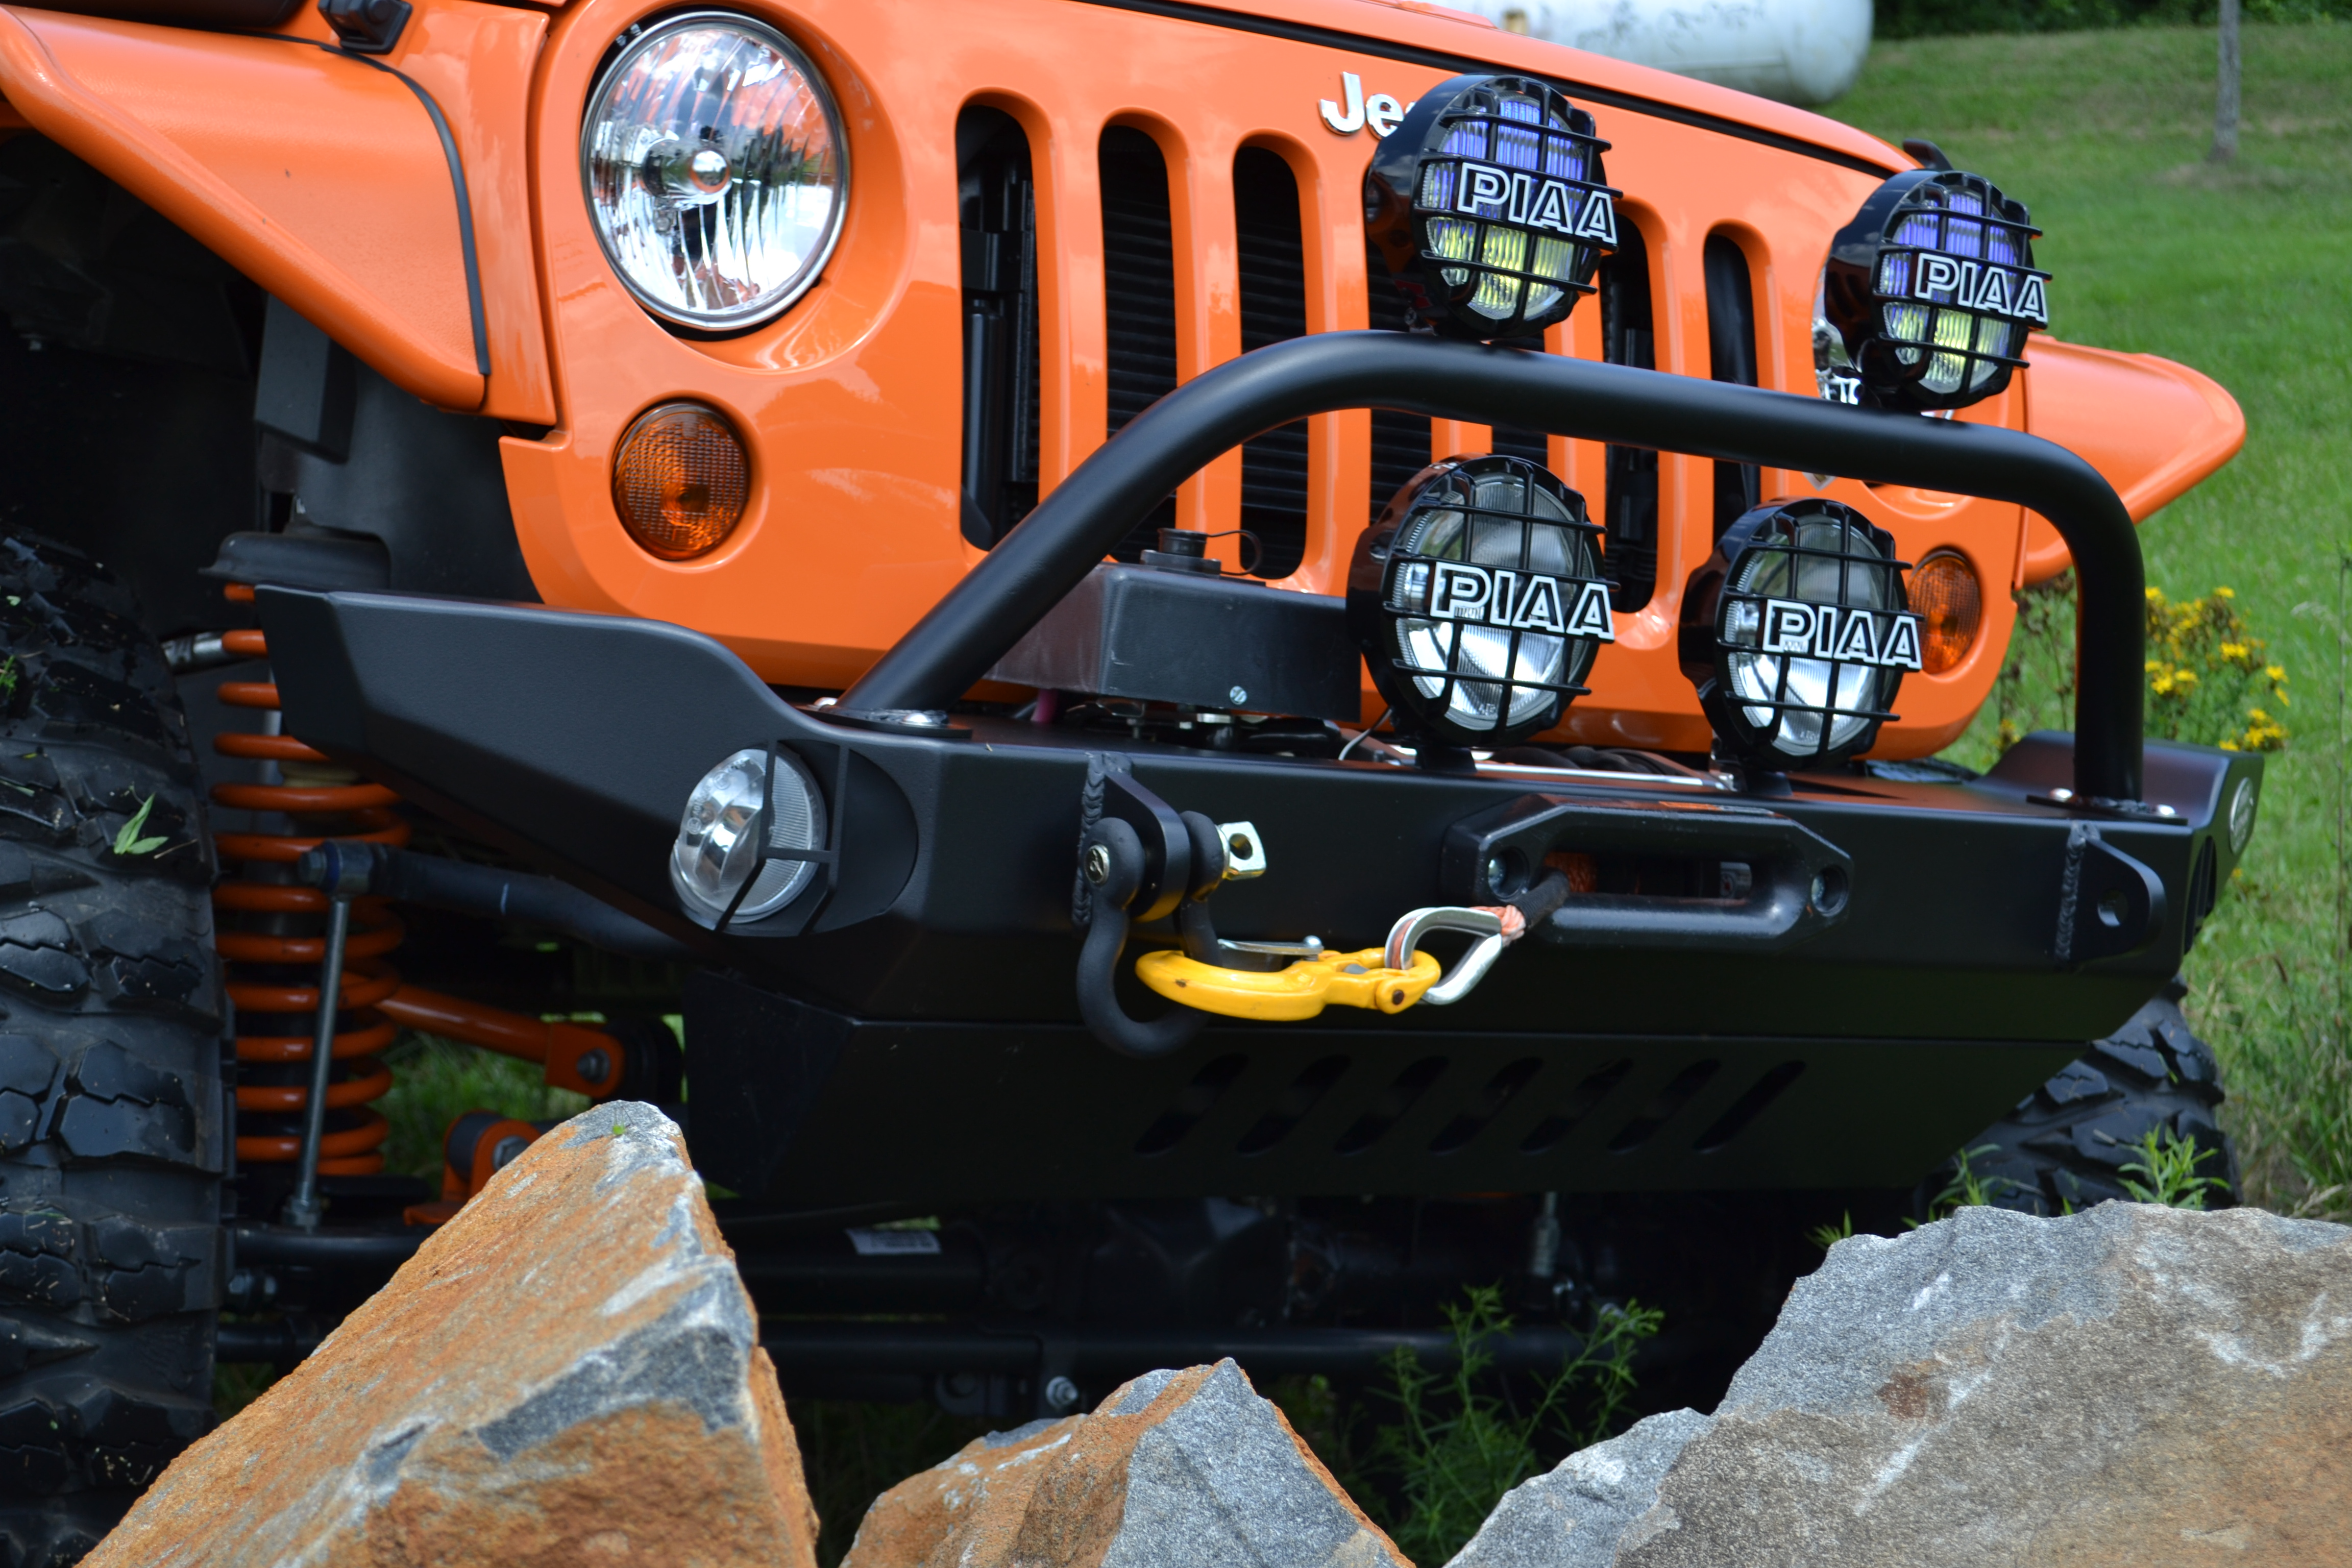 Jeep JK Mid Width Front Recessed Winch Bumper. View the full image ...